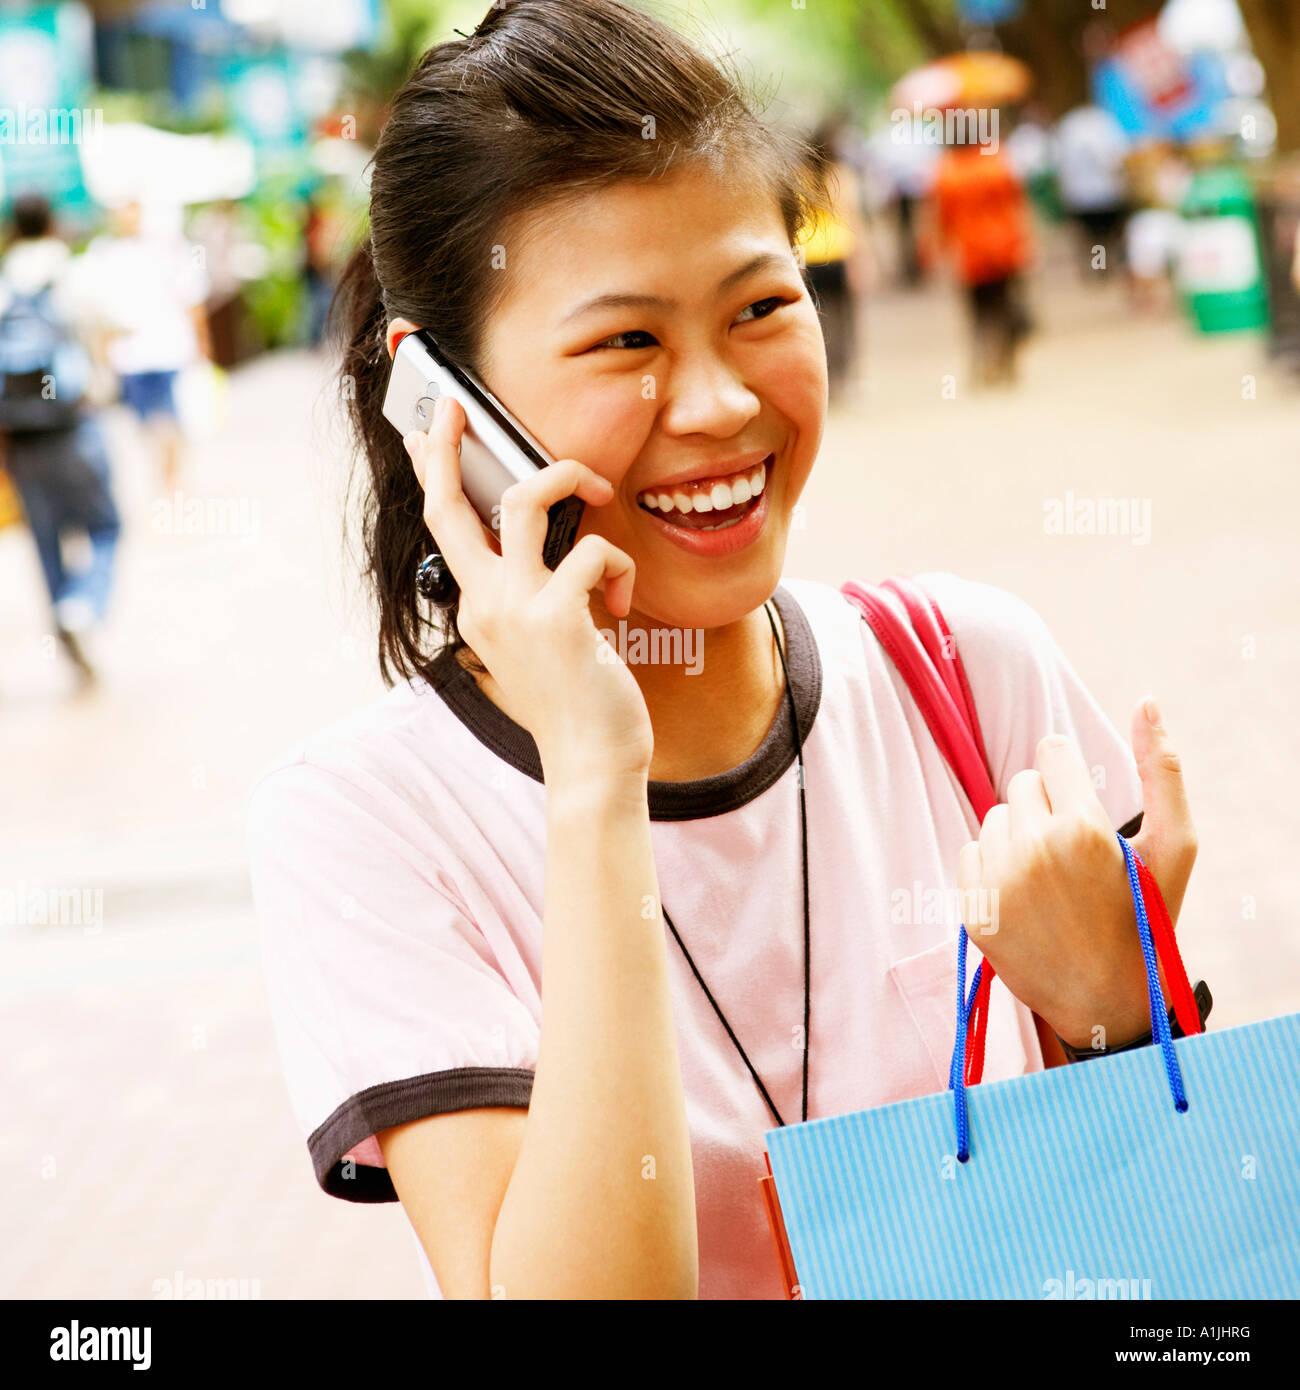 Close-up of a young woman talking on a mobile phone and carrying a shopping bag - Stock Image